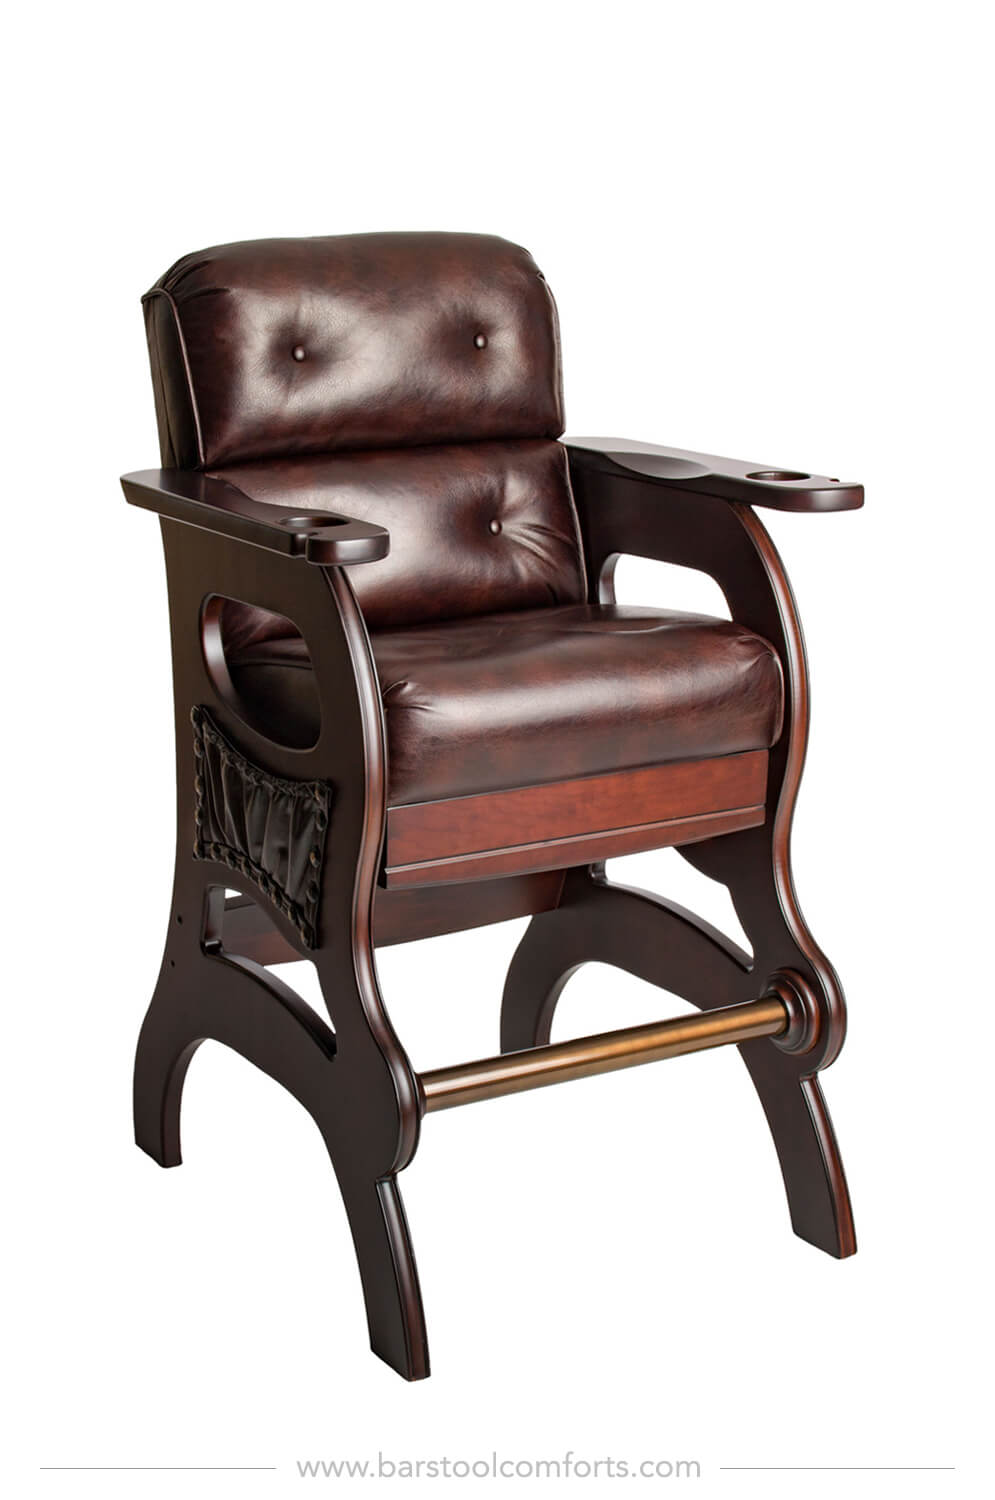 Buy Darafeev S Mann Sports Theater Billiards Chair Free Shipping